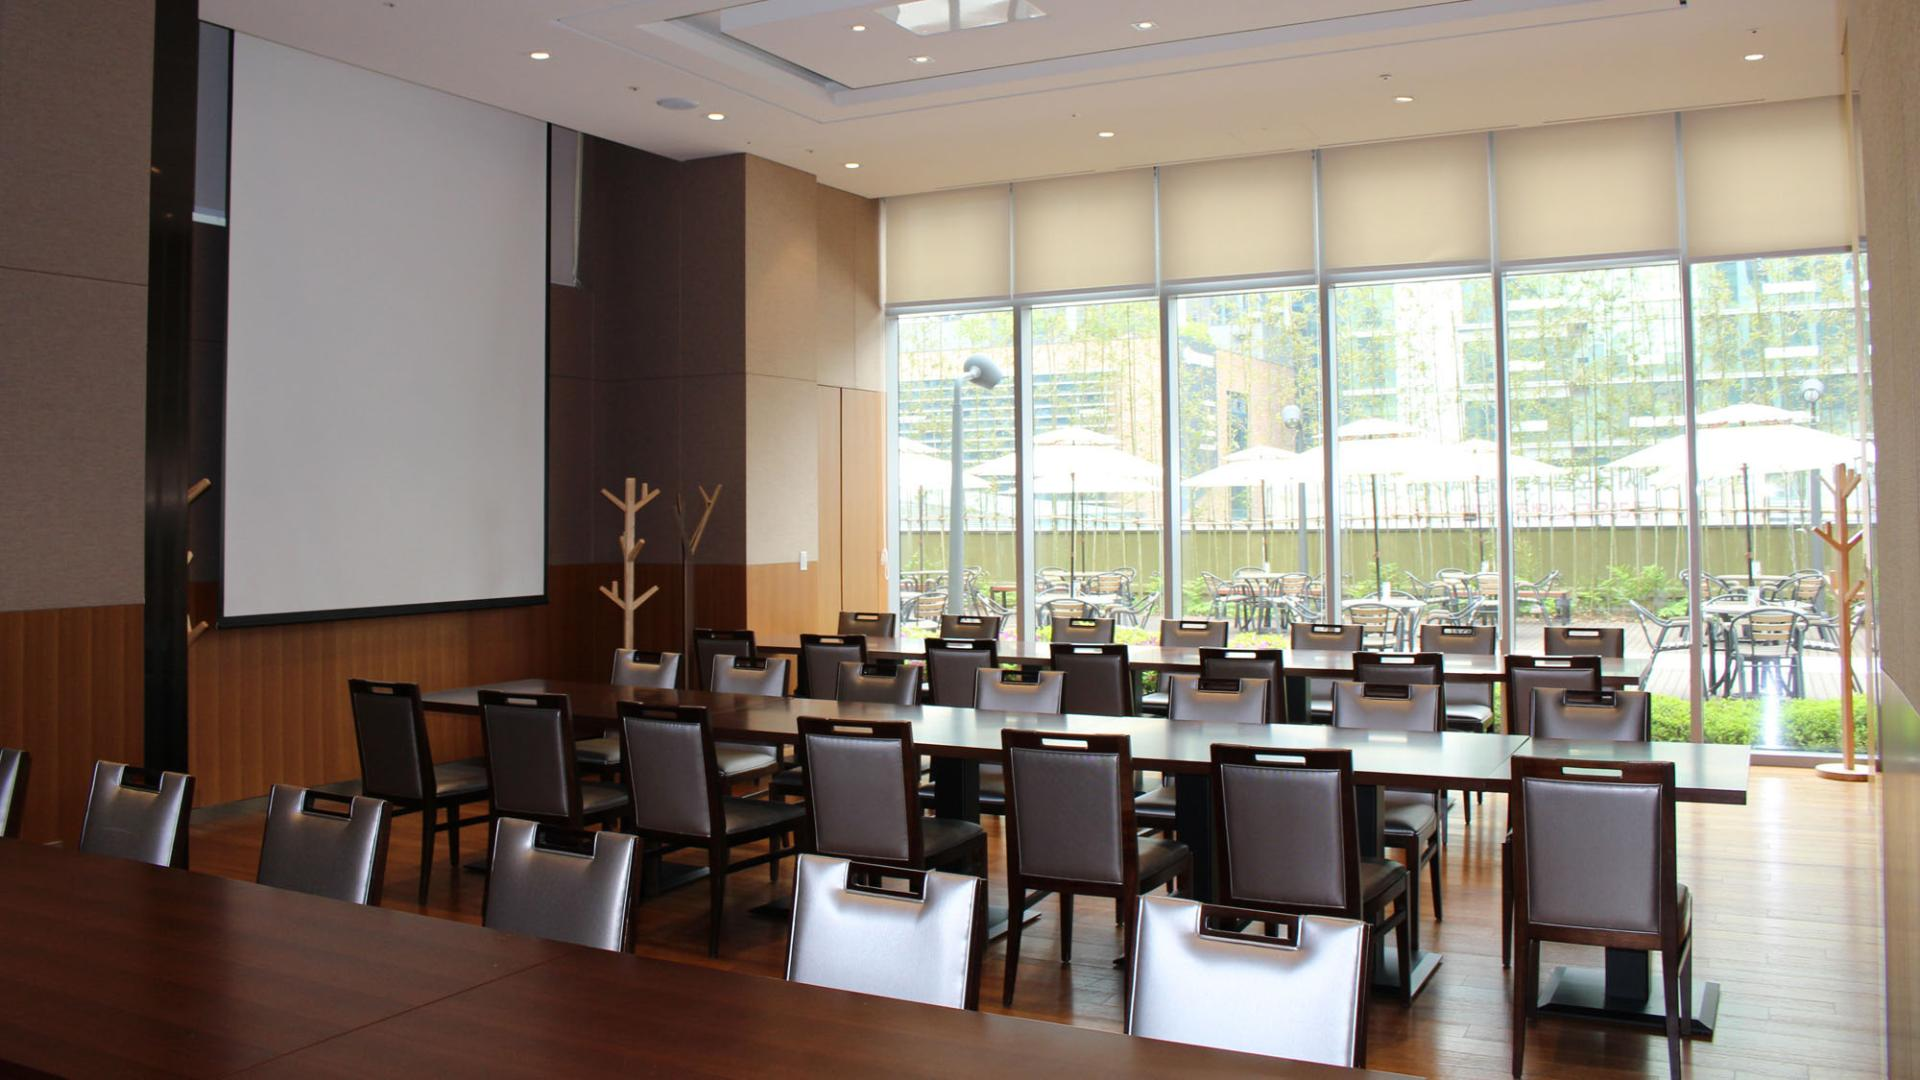 Lotte City Hotel Guro - Banquets & Conventions - Pearlroom